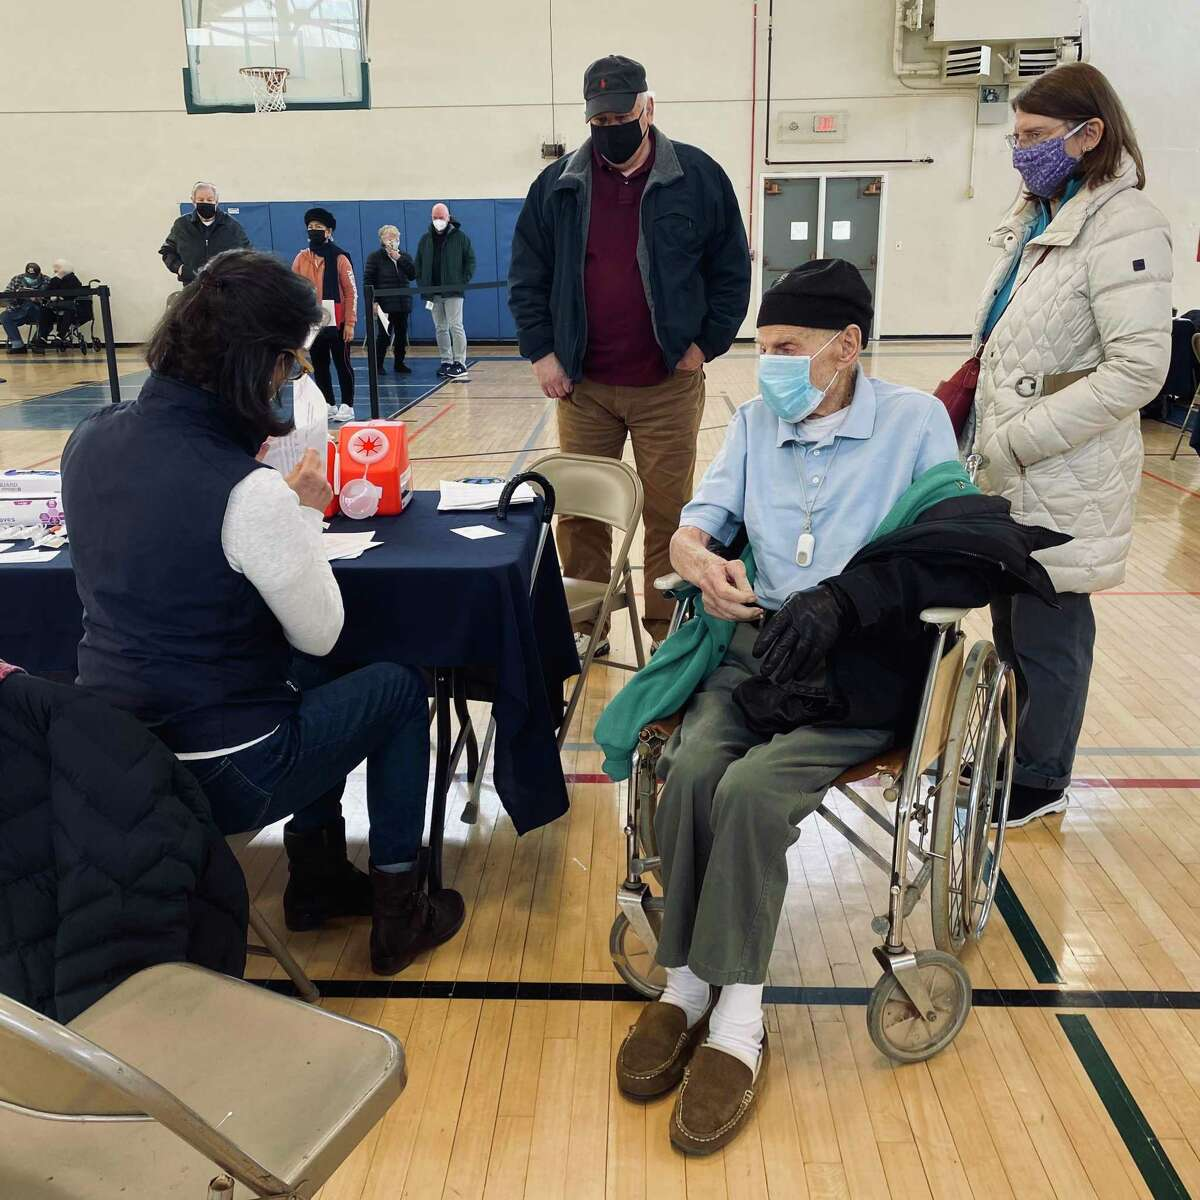 Darien's Alfred Andreoli, who will turn 103 in April, recently received his second dose of the Moderna vaccine in Darien's vaccination clinic. His daughter Patricia and son-in-law James received their first dose.